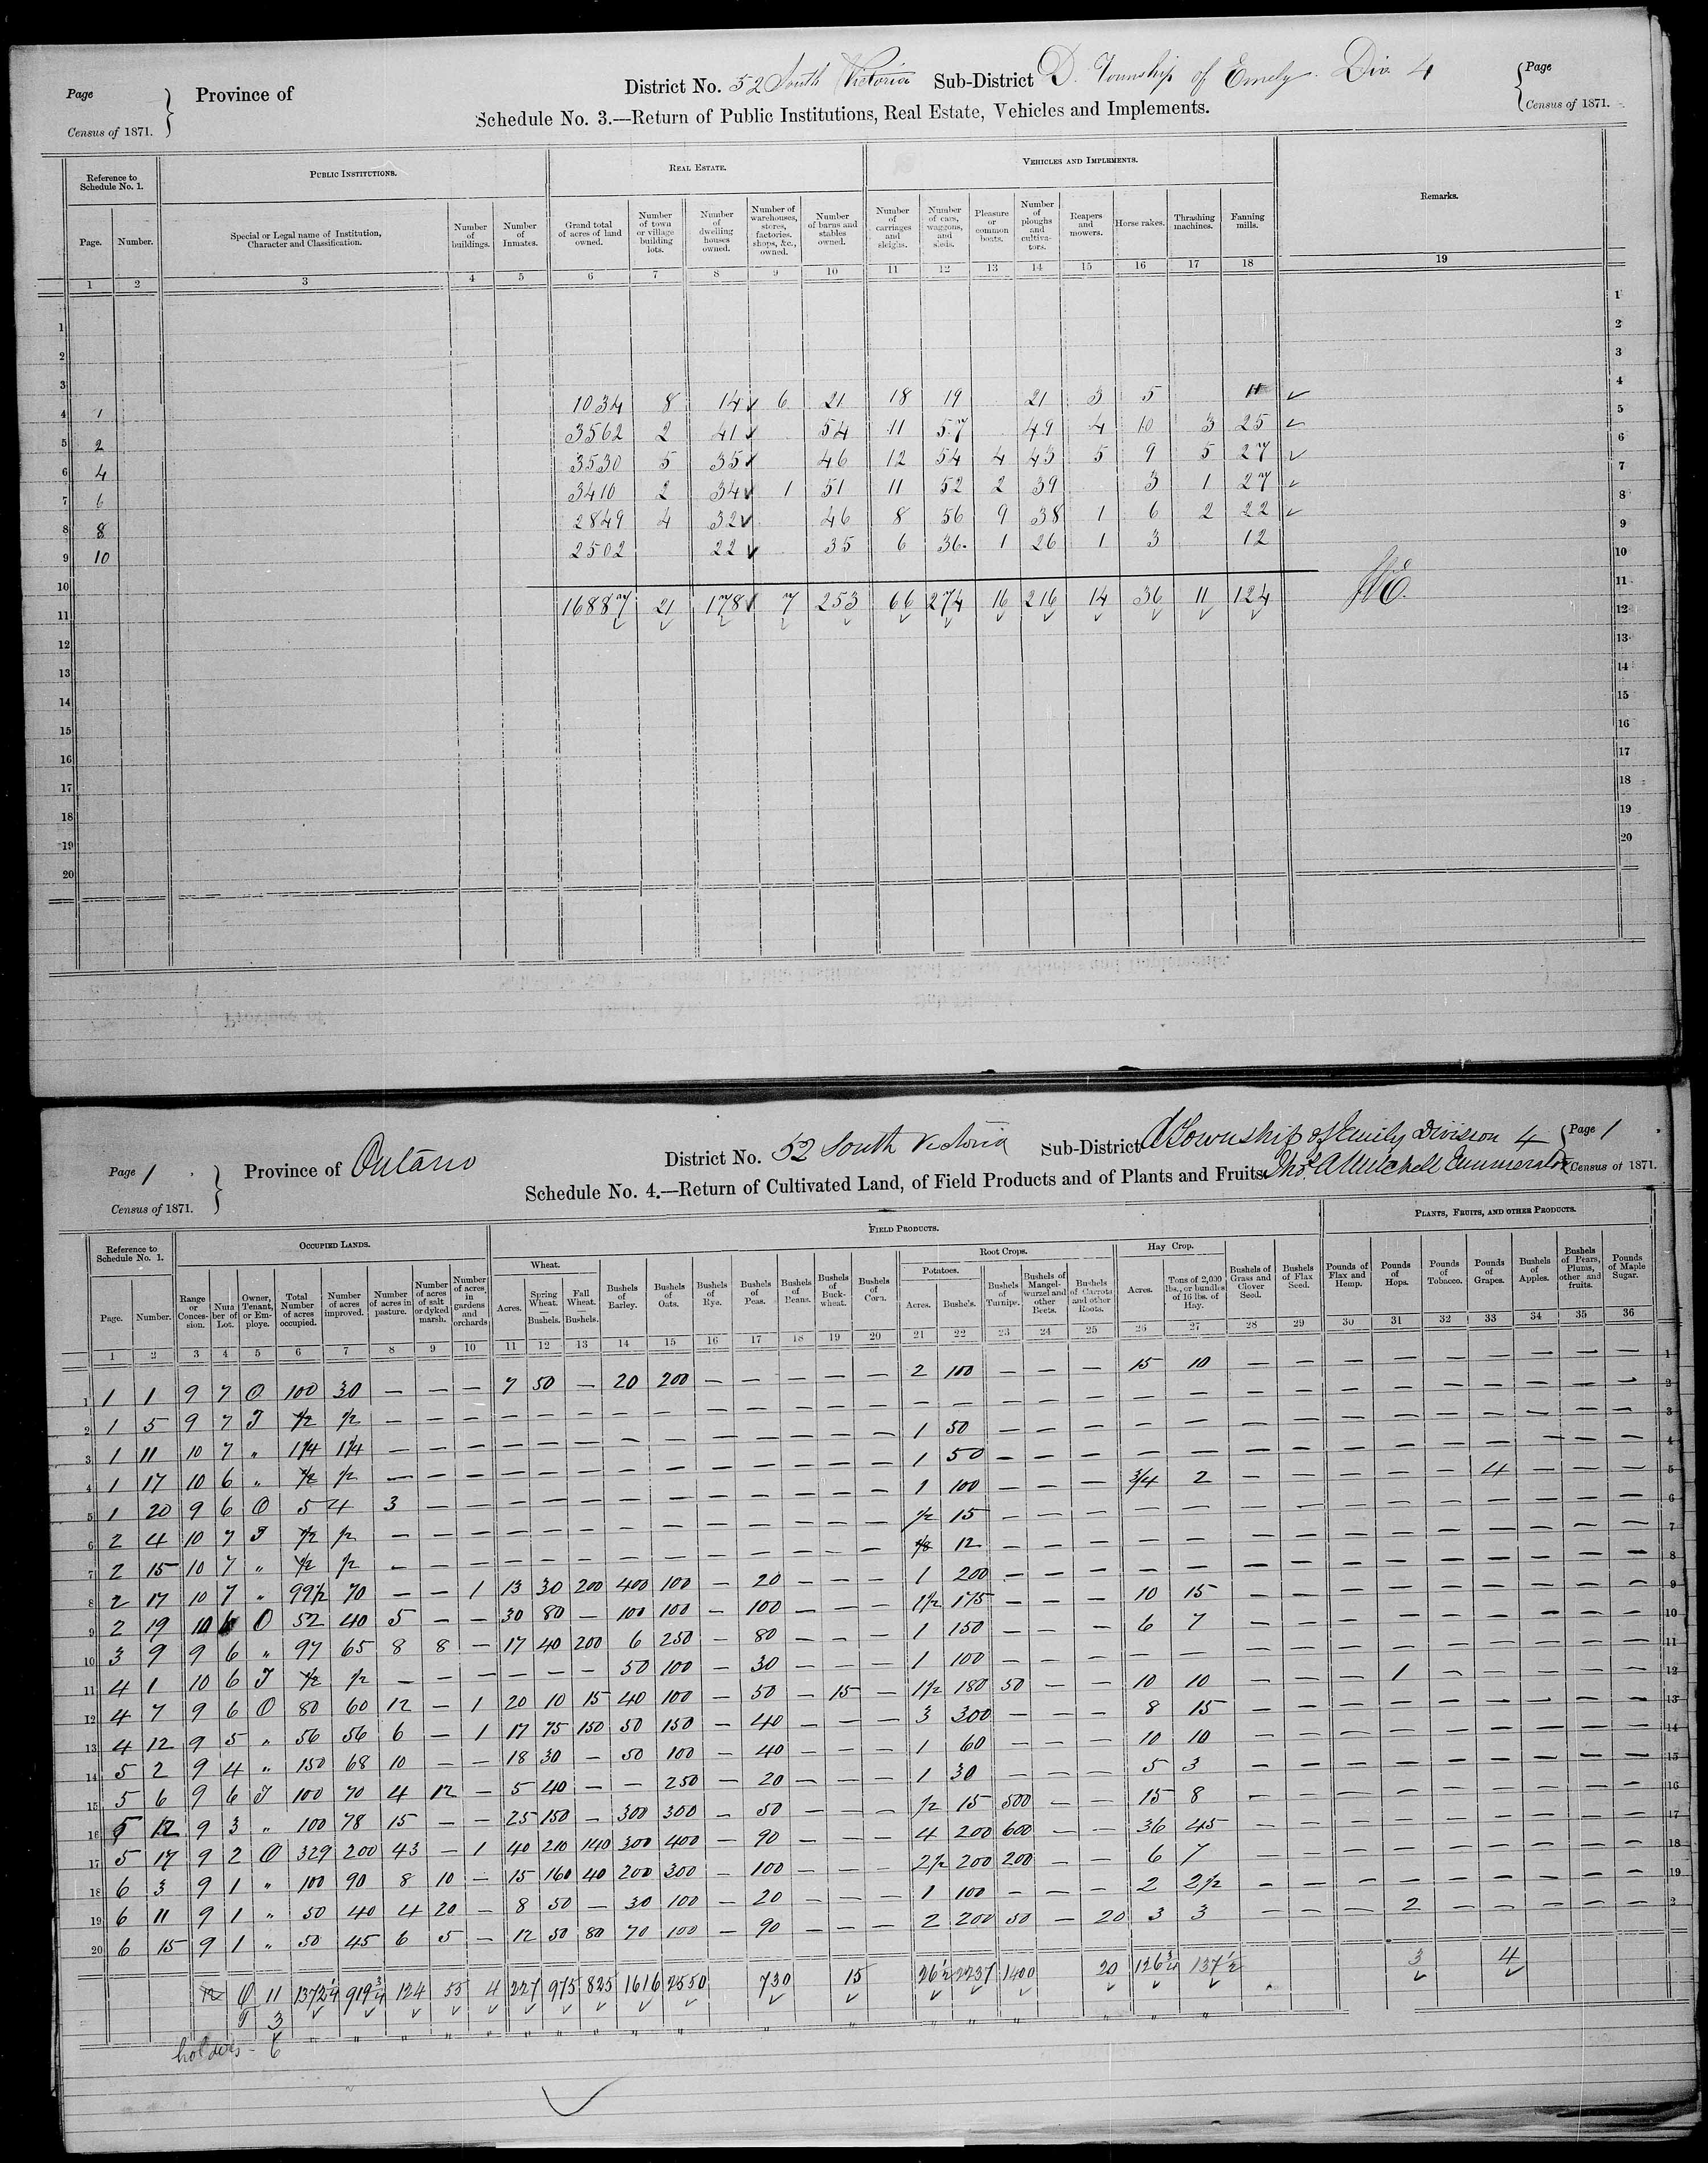 Title: Census of Canada, 1871 - Mikan Number: 142105 - Microform: c-9981